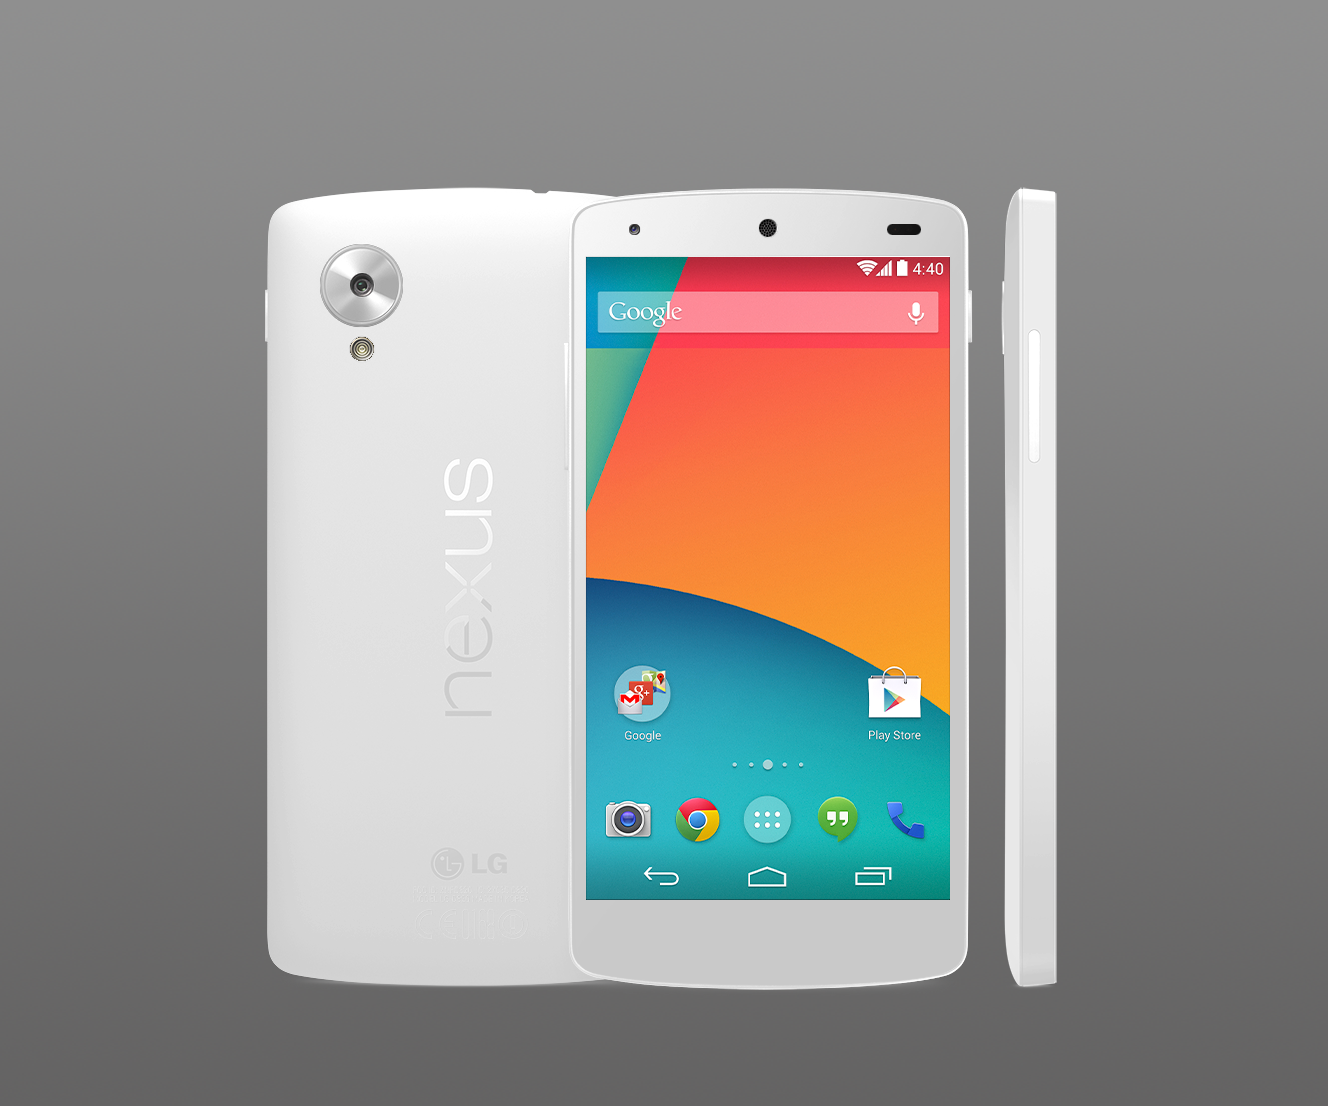 [Rumor Smash] This Is Absolutely Not An All-White Nexus 5